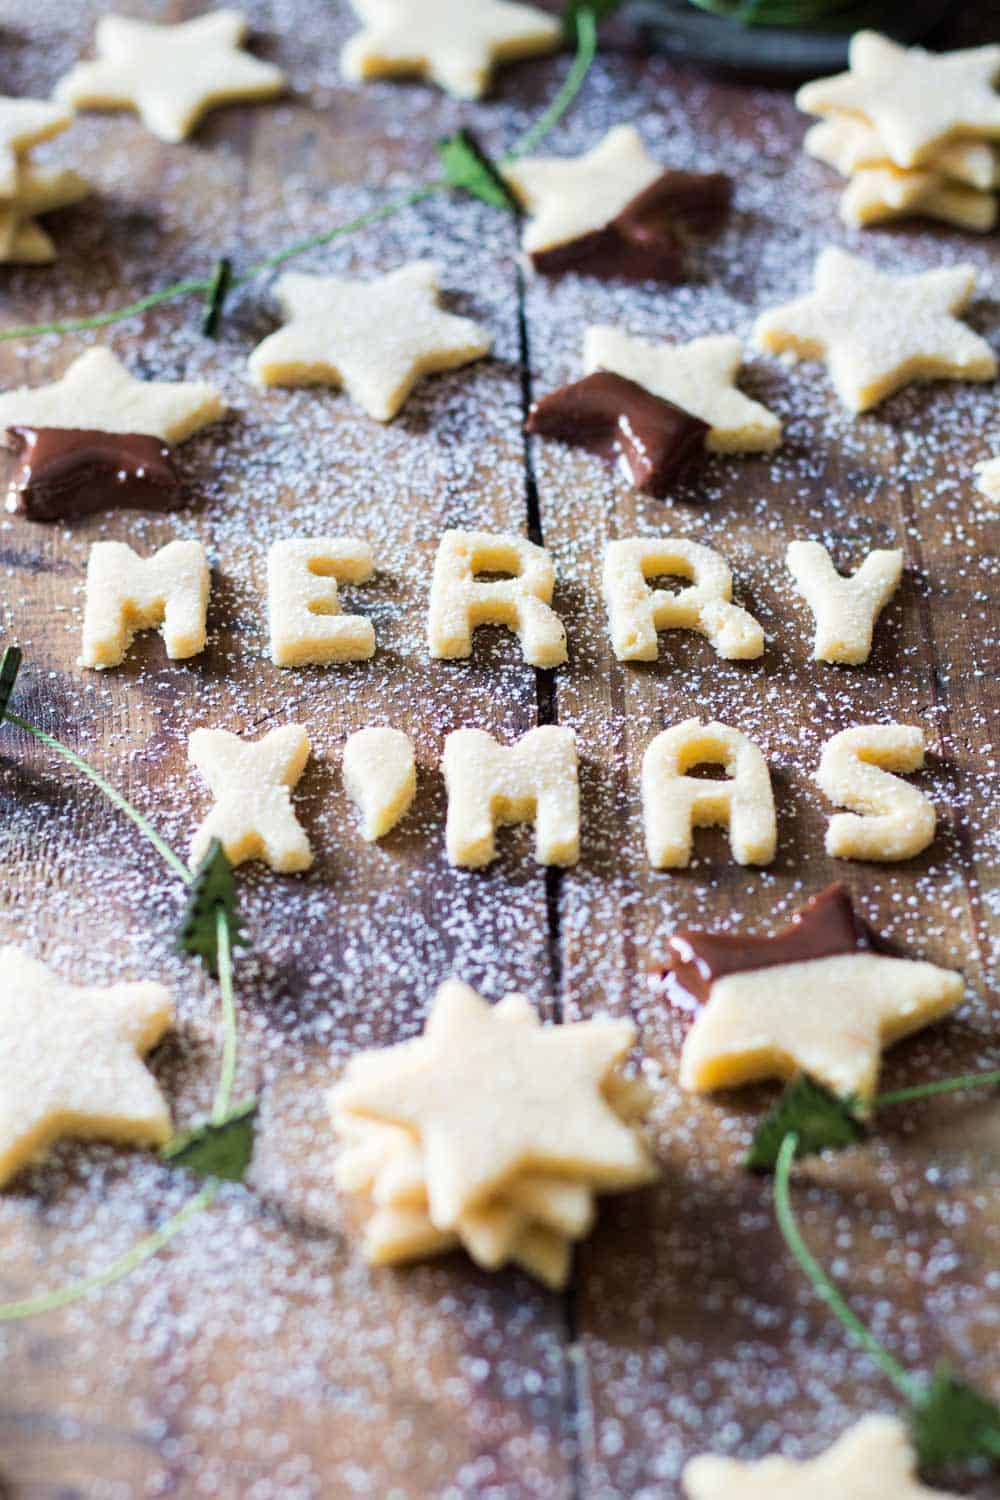 Star-shaped almond flour cookies scattered on wood board, and Merry X'mas sign made of almond flour.